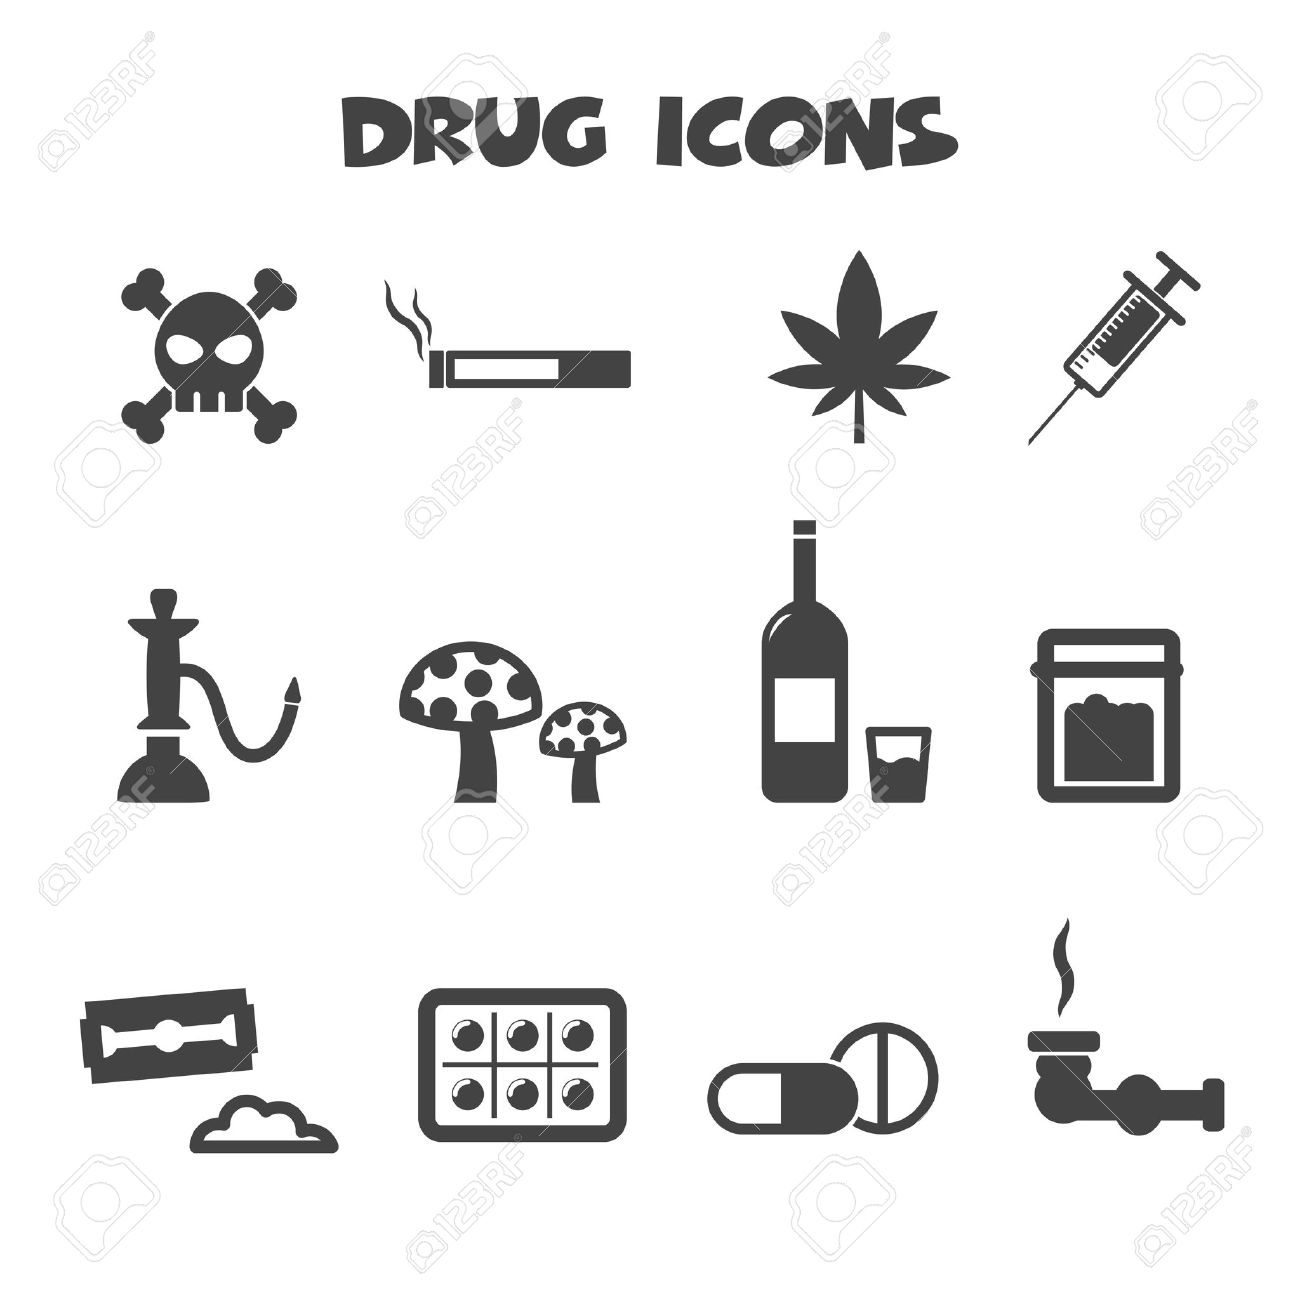 Drug icons symbols royalty free cliparts vectors and stock drug icons symbols stock vector 26621892 biocorpaavc Images